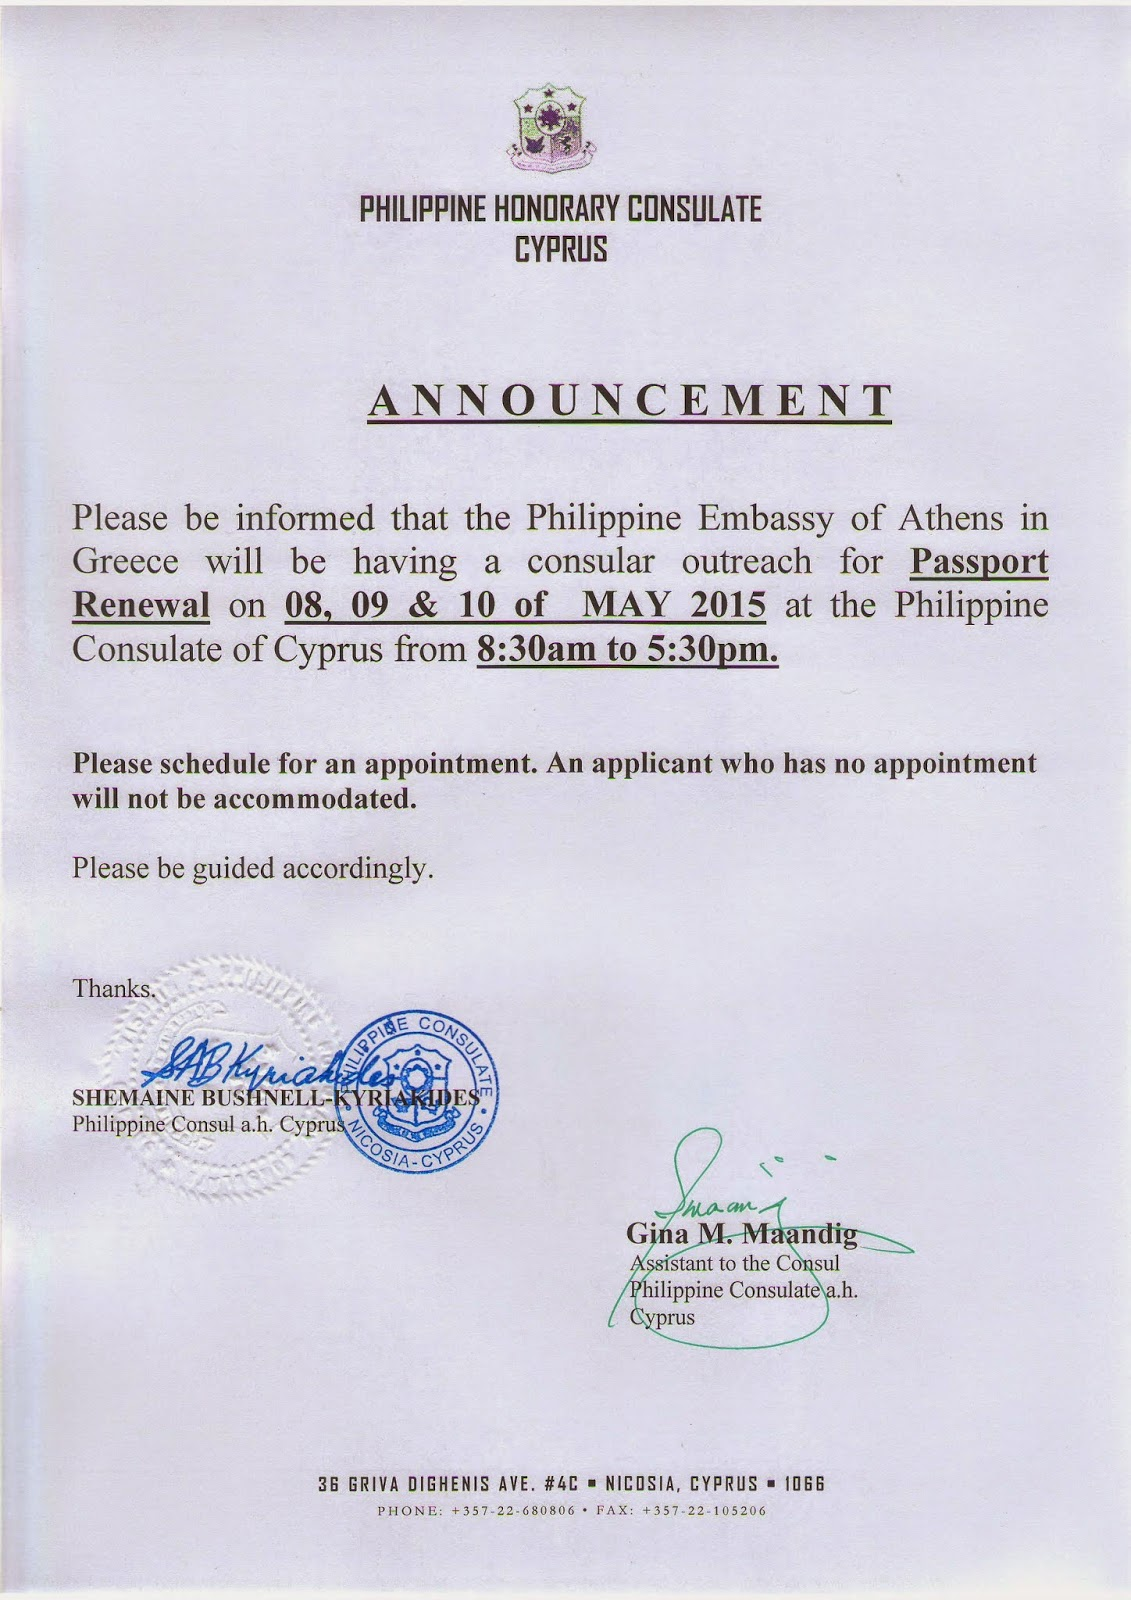 Philippine Consulate Cyprus: Passport Schedule Please Read